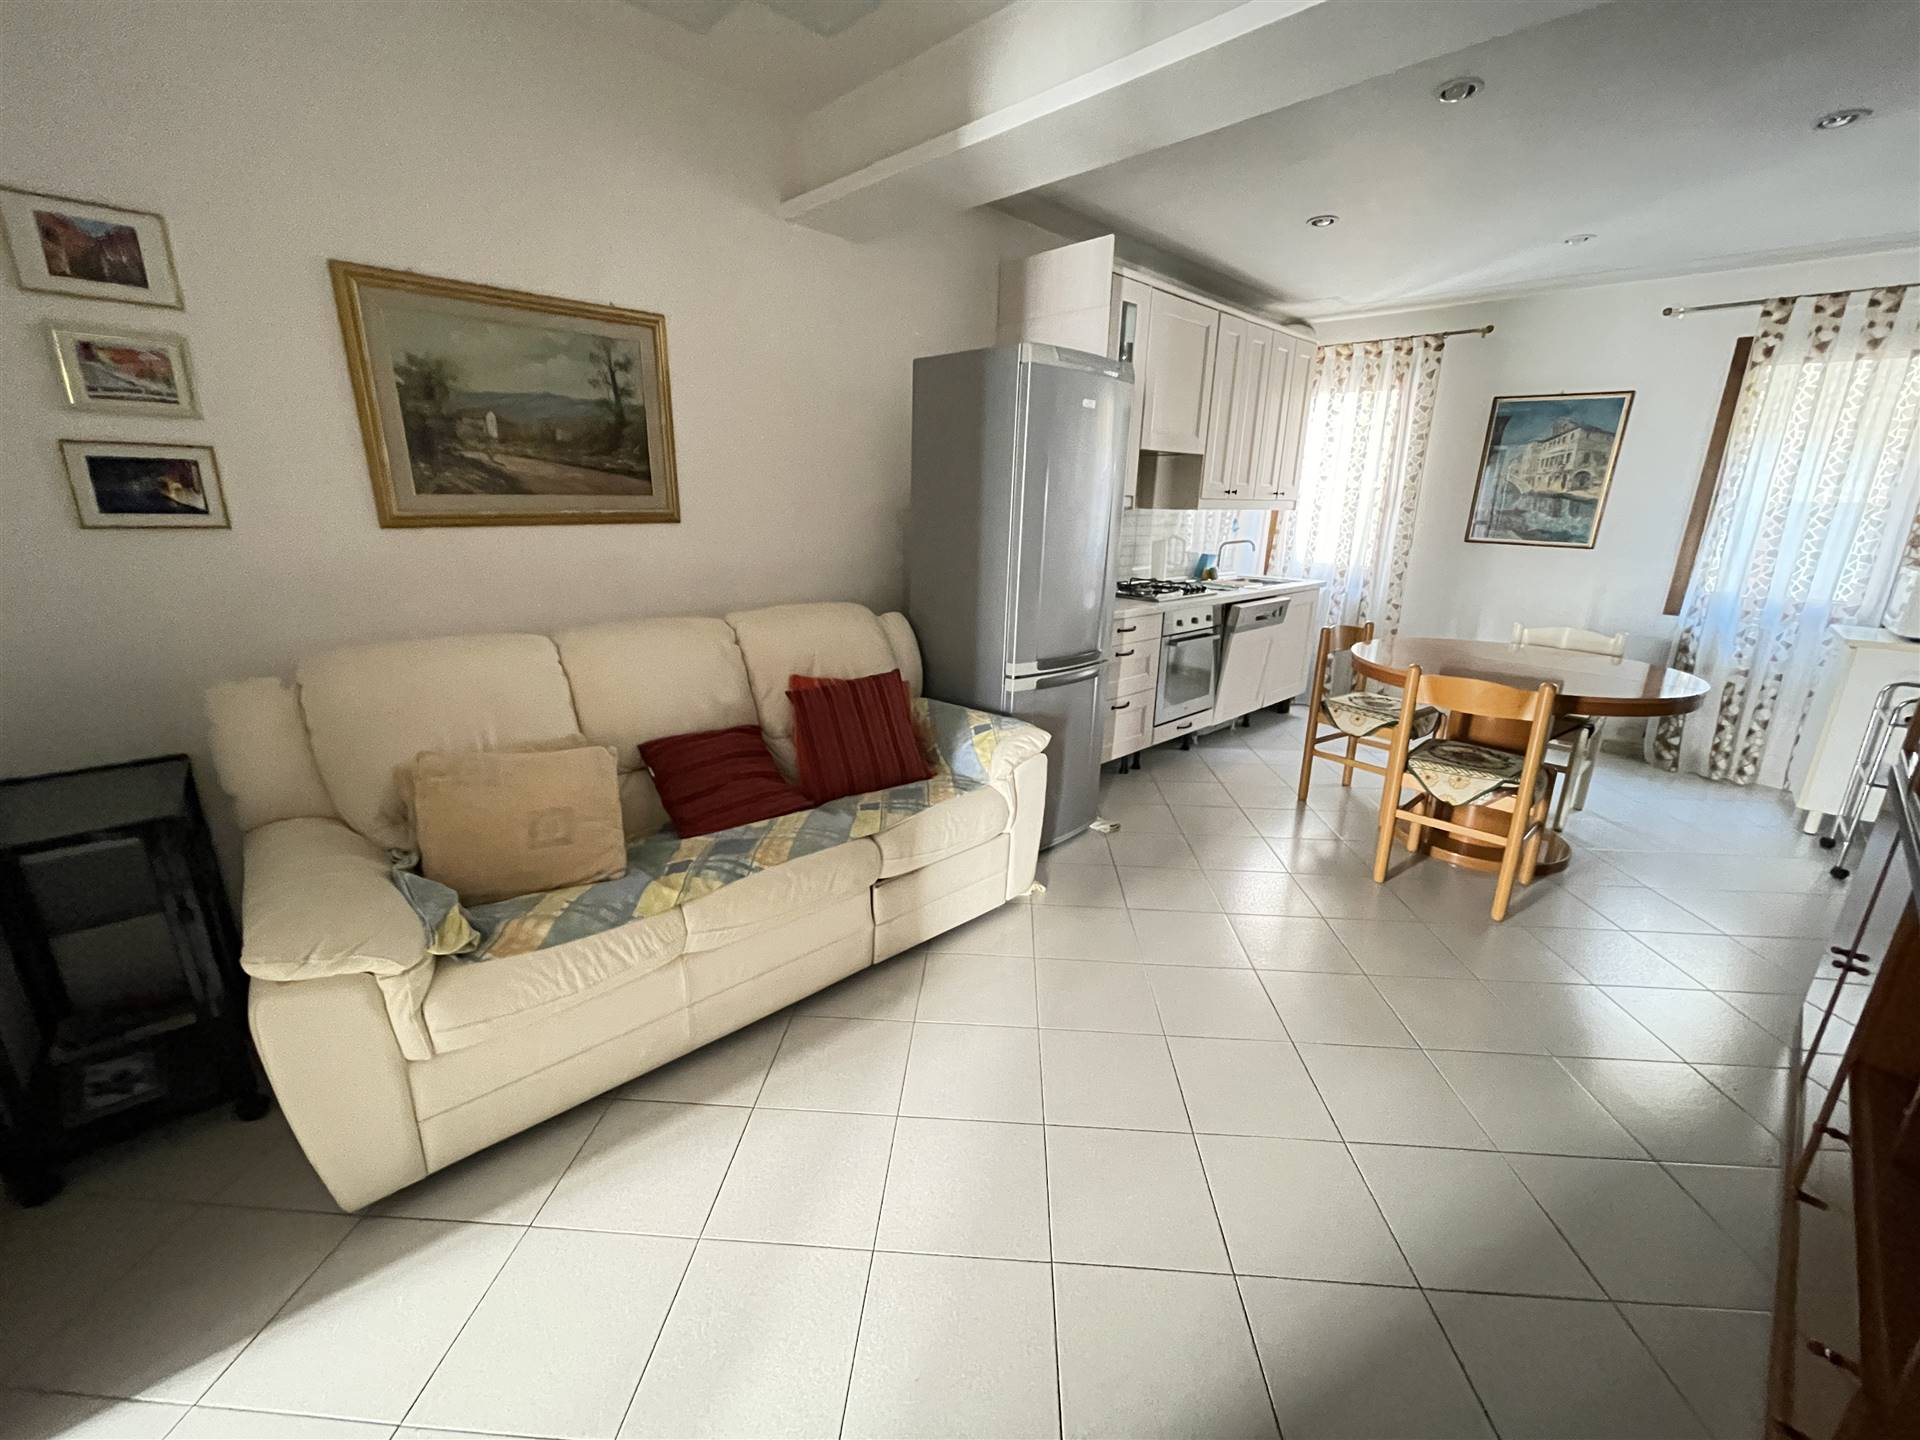 CHIOGGIA CENTRO, CHIOGGIA, Apartment for sale of 60 Sq. mt., Excellent Condition, Heating Individual heating system, Energetic class: G, placed at 1°